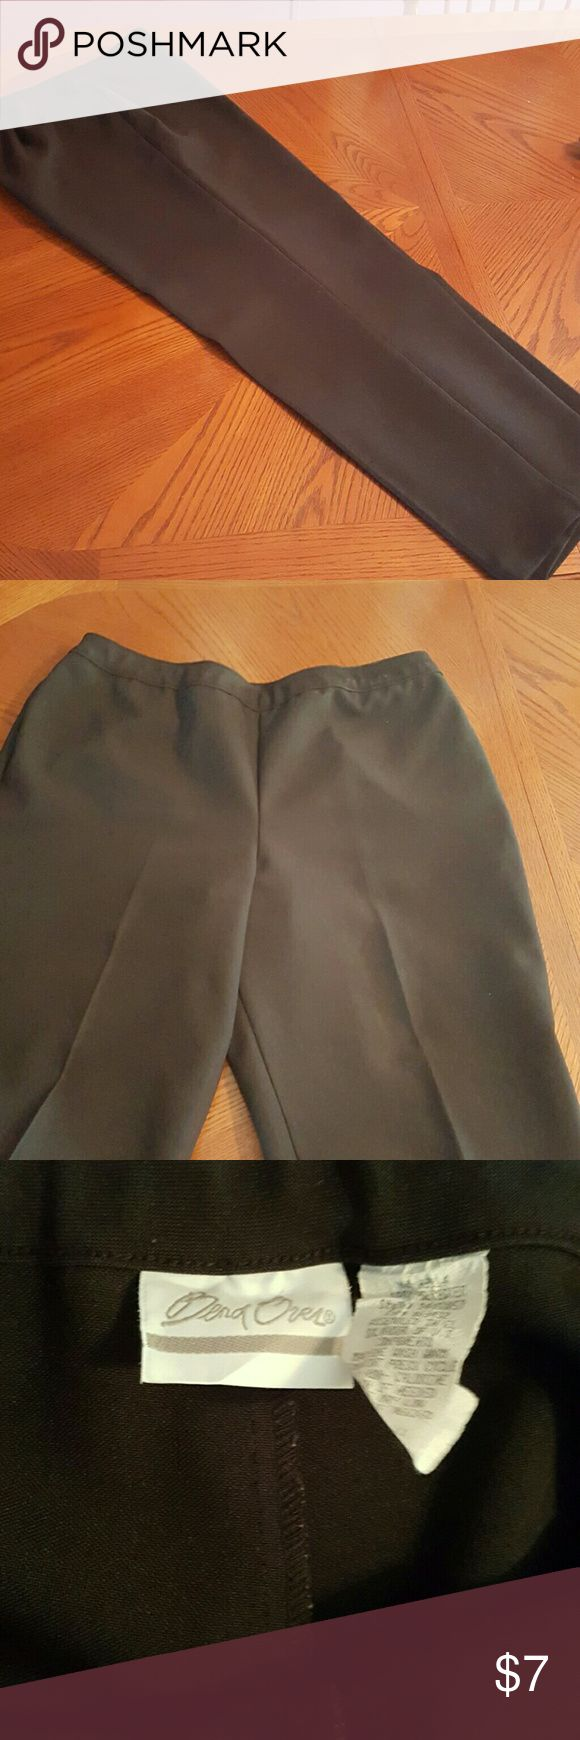 Bend Over from Chadwicks blk dress slacks Black , no iron , permanent crease down leg front, bend overs . The most comfortable slacks you' ll ever wear! Chadwicks Pants Boot Cut & Flare